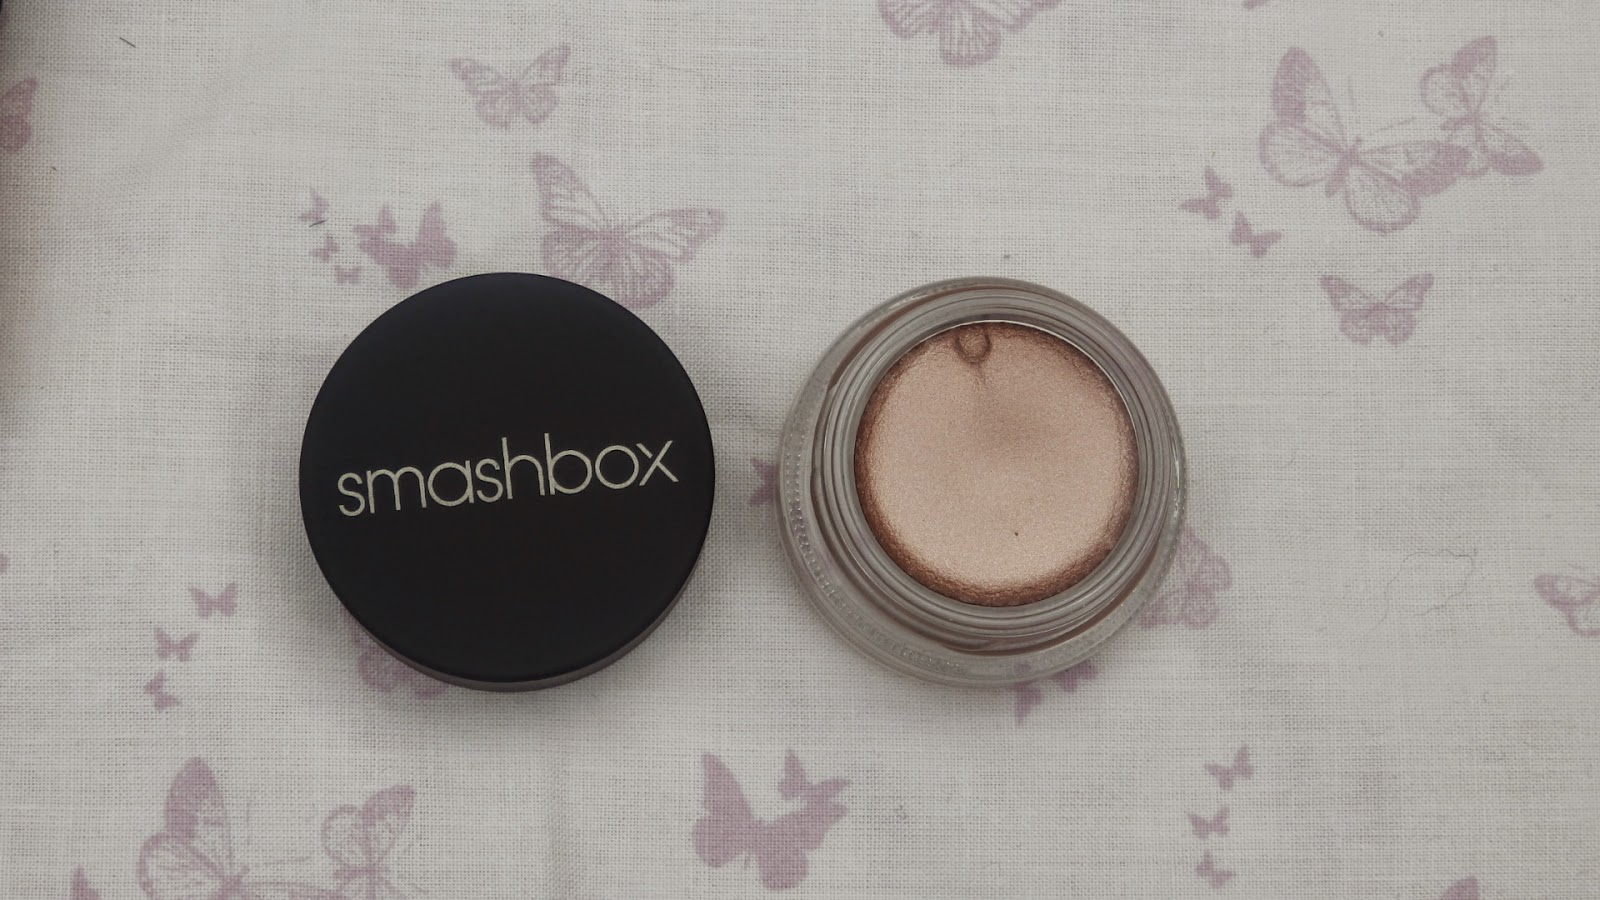 Smashbox Limitless 15 Hour Wear Cream Shadow in Quartz